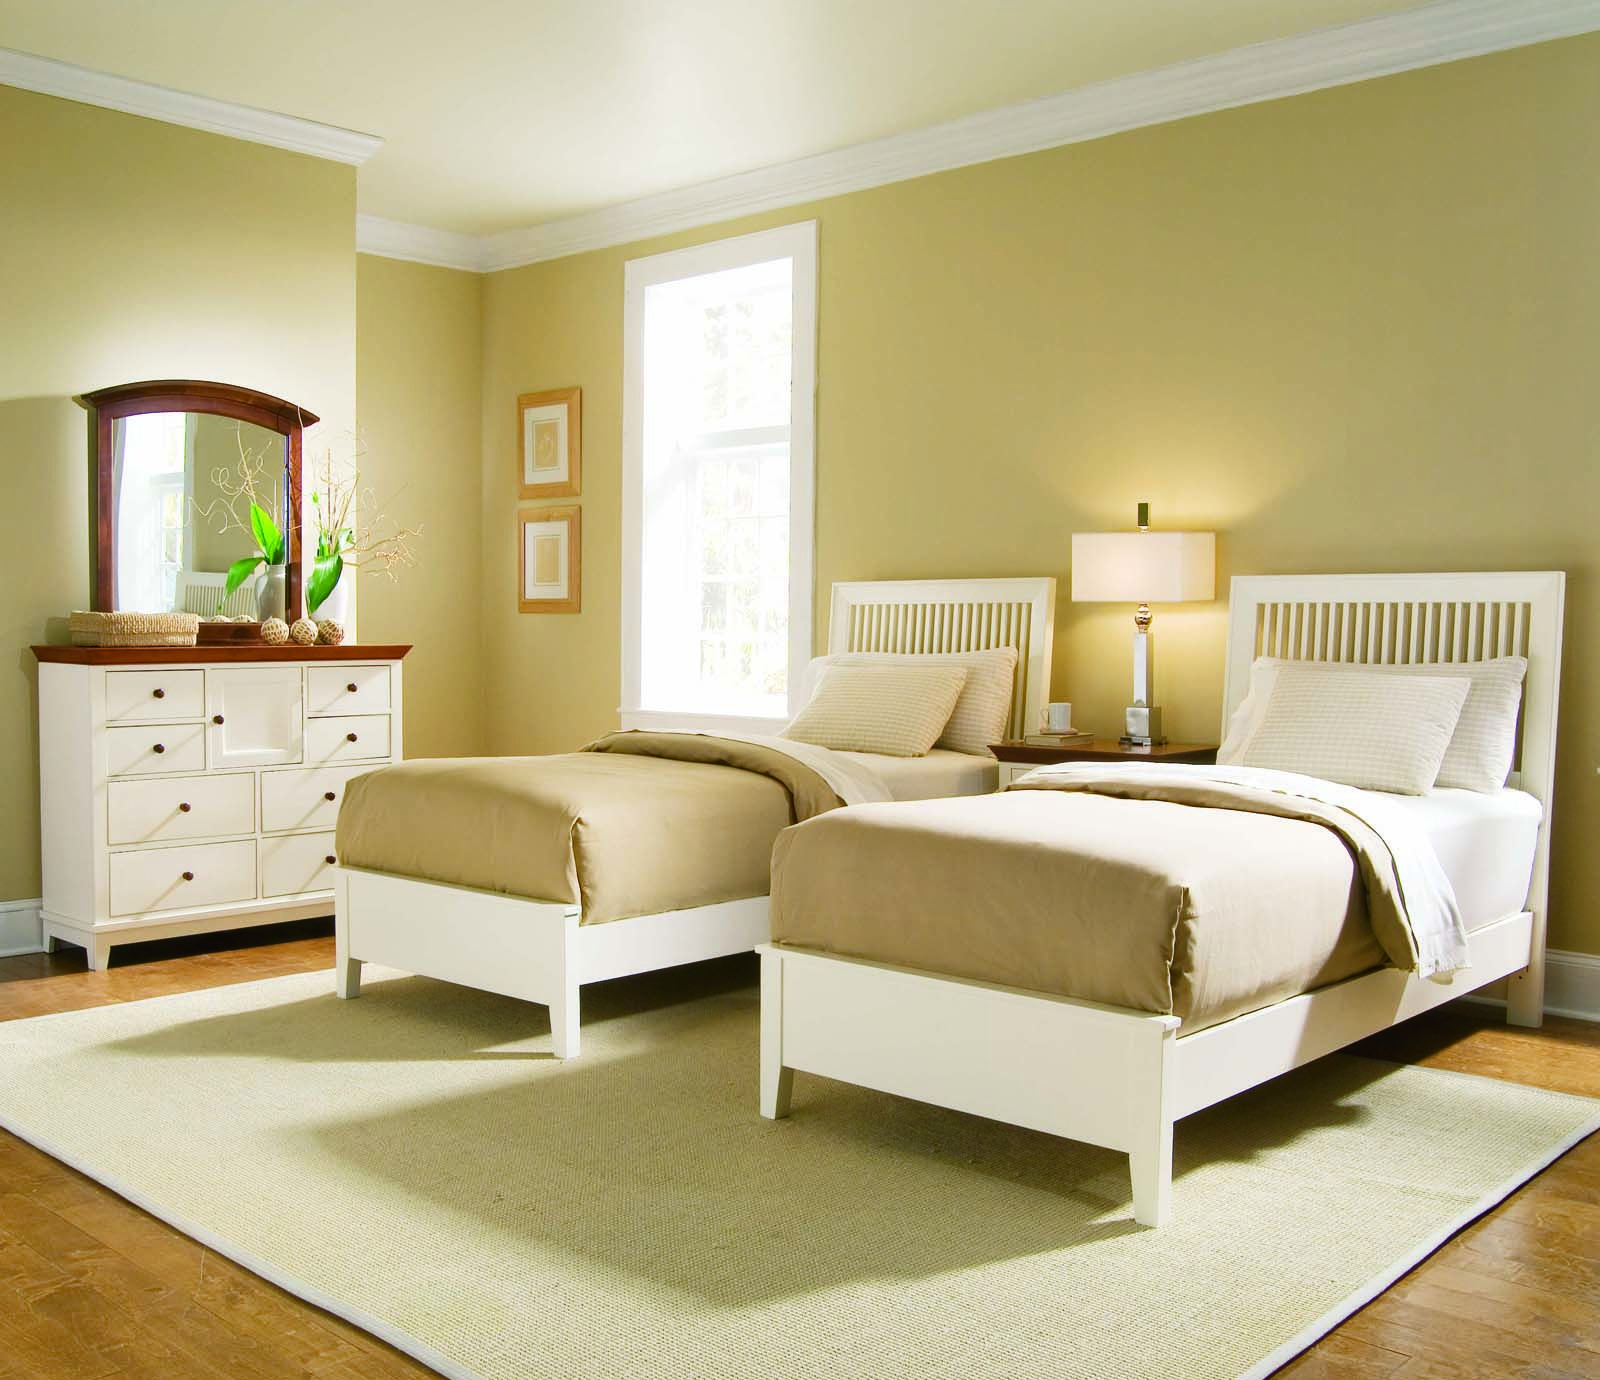 by using our bedroom furniture set you have possibility to give